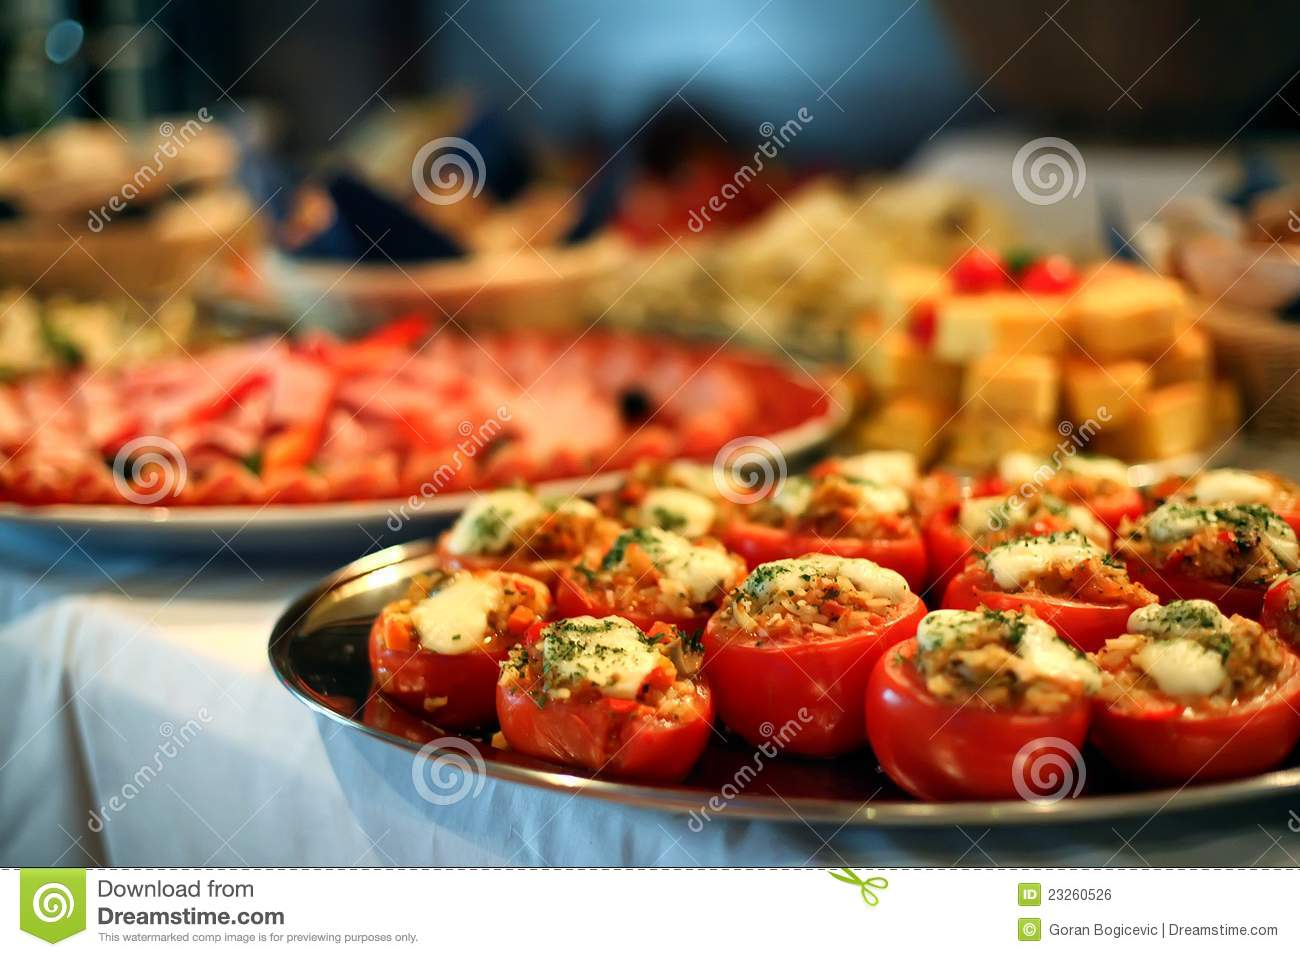 Catering Food Royalty Free Stock Image Image 23260526